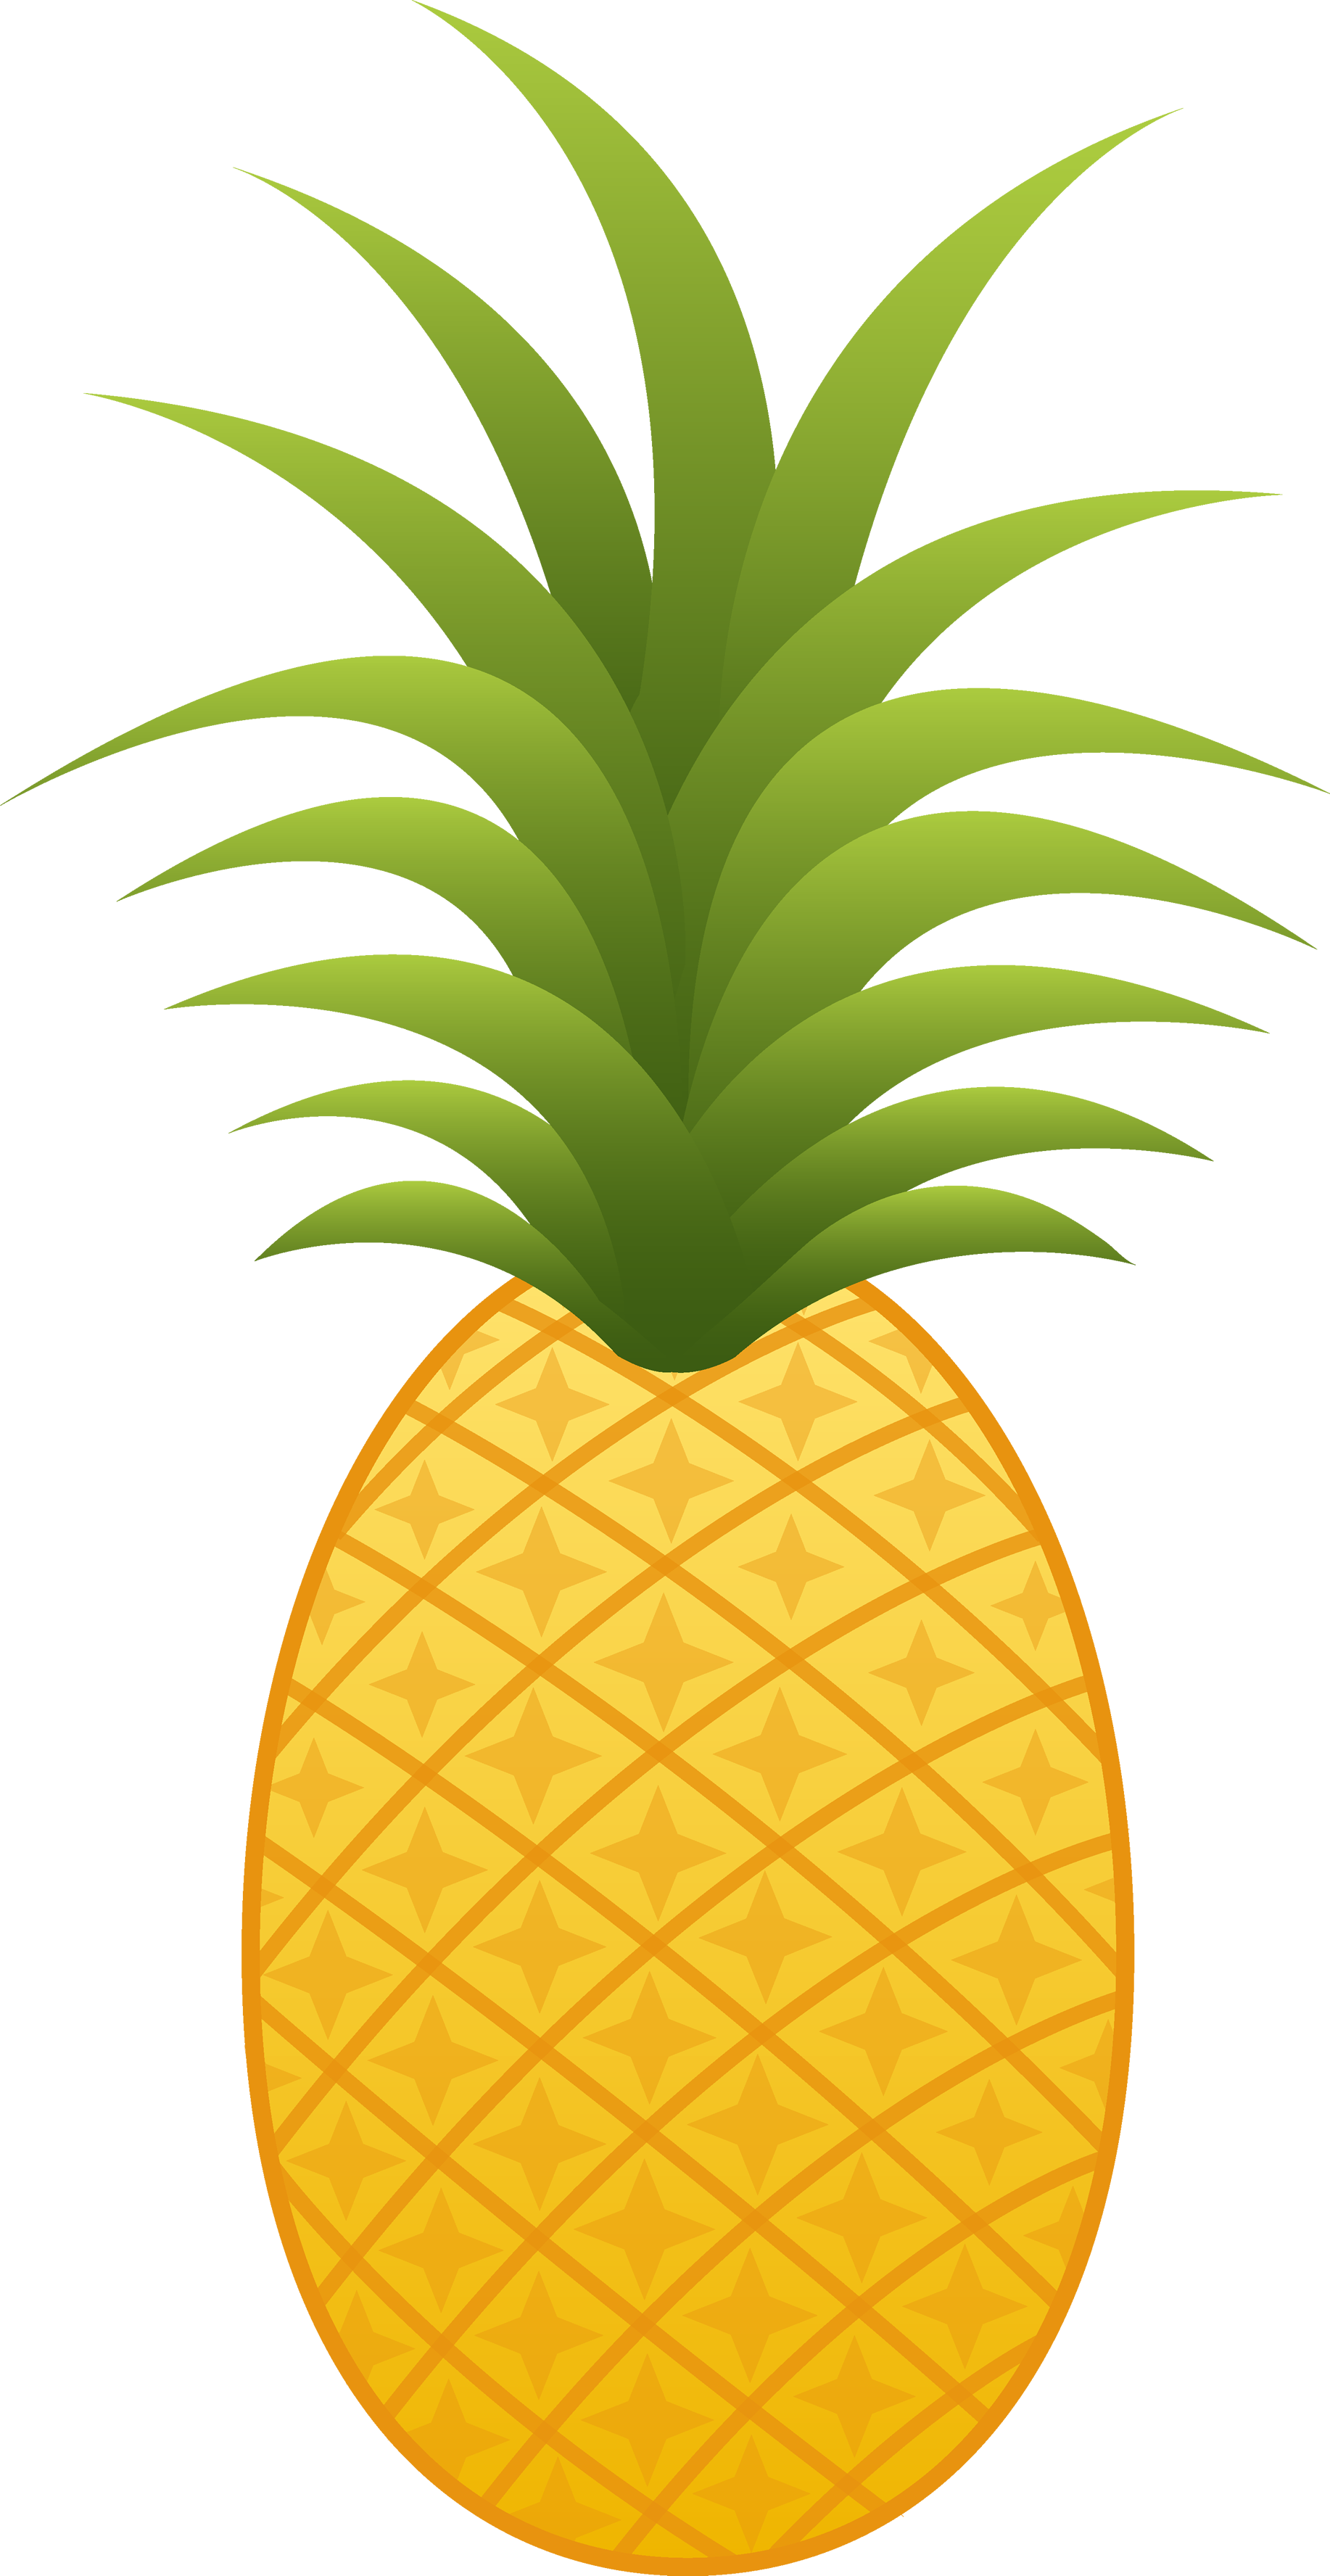 Pineapple flower clipart graphic library stock Pineapple images free pictures download 3 | Pineapple | Pinterest ... graphic library stock